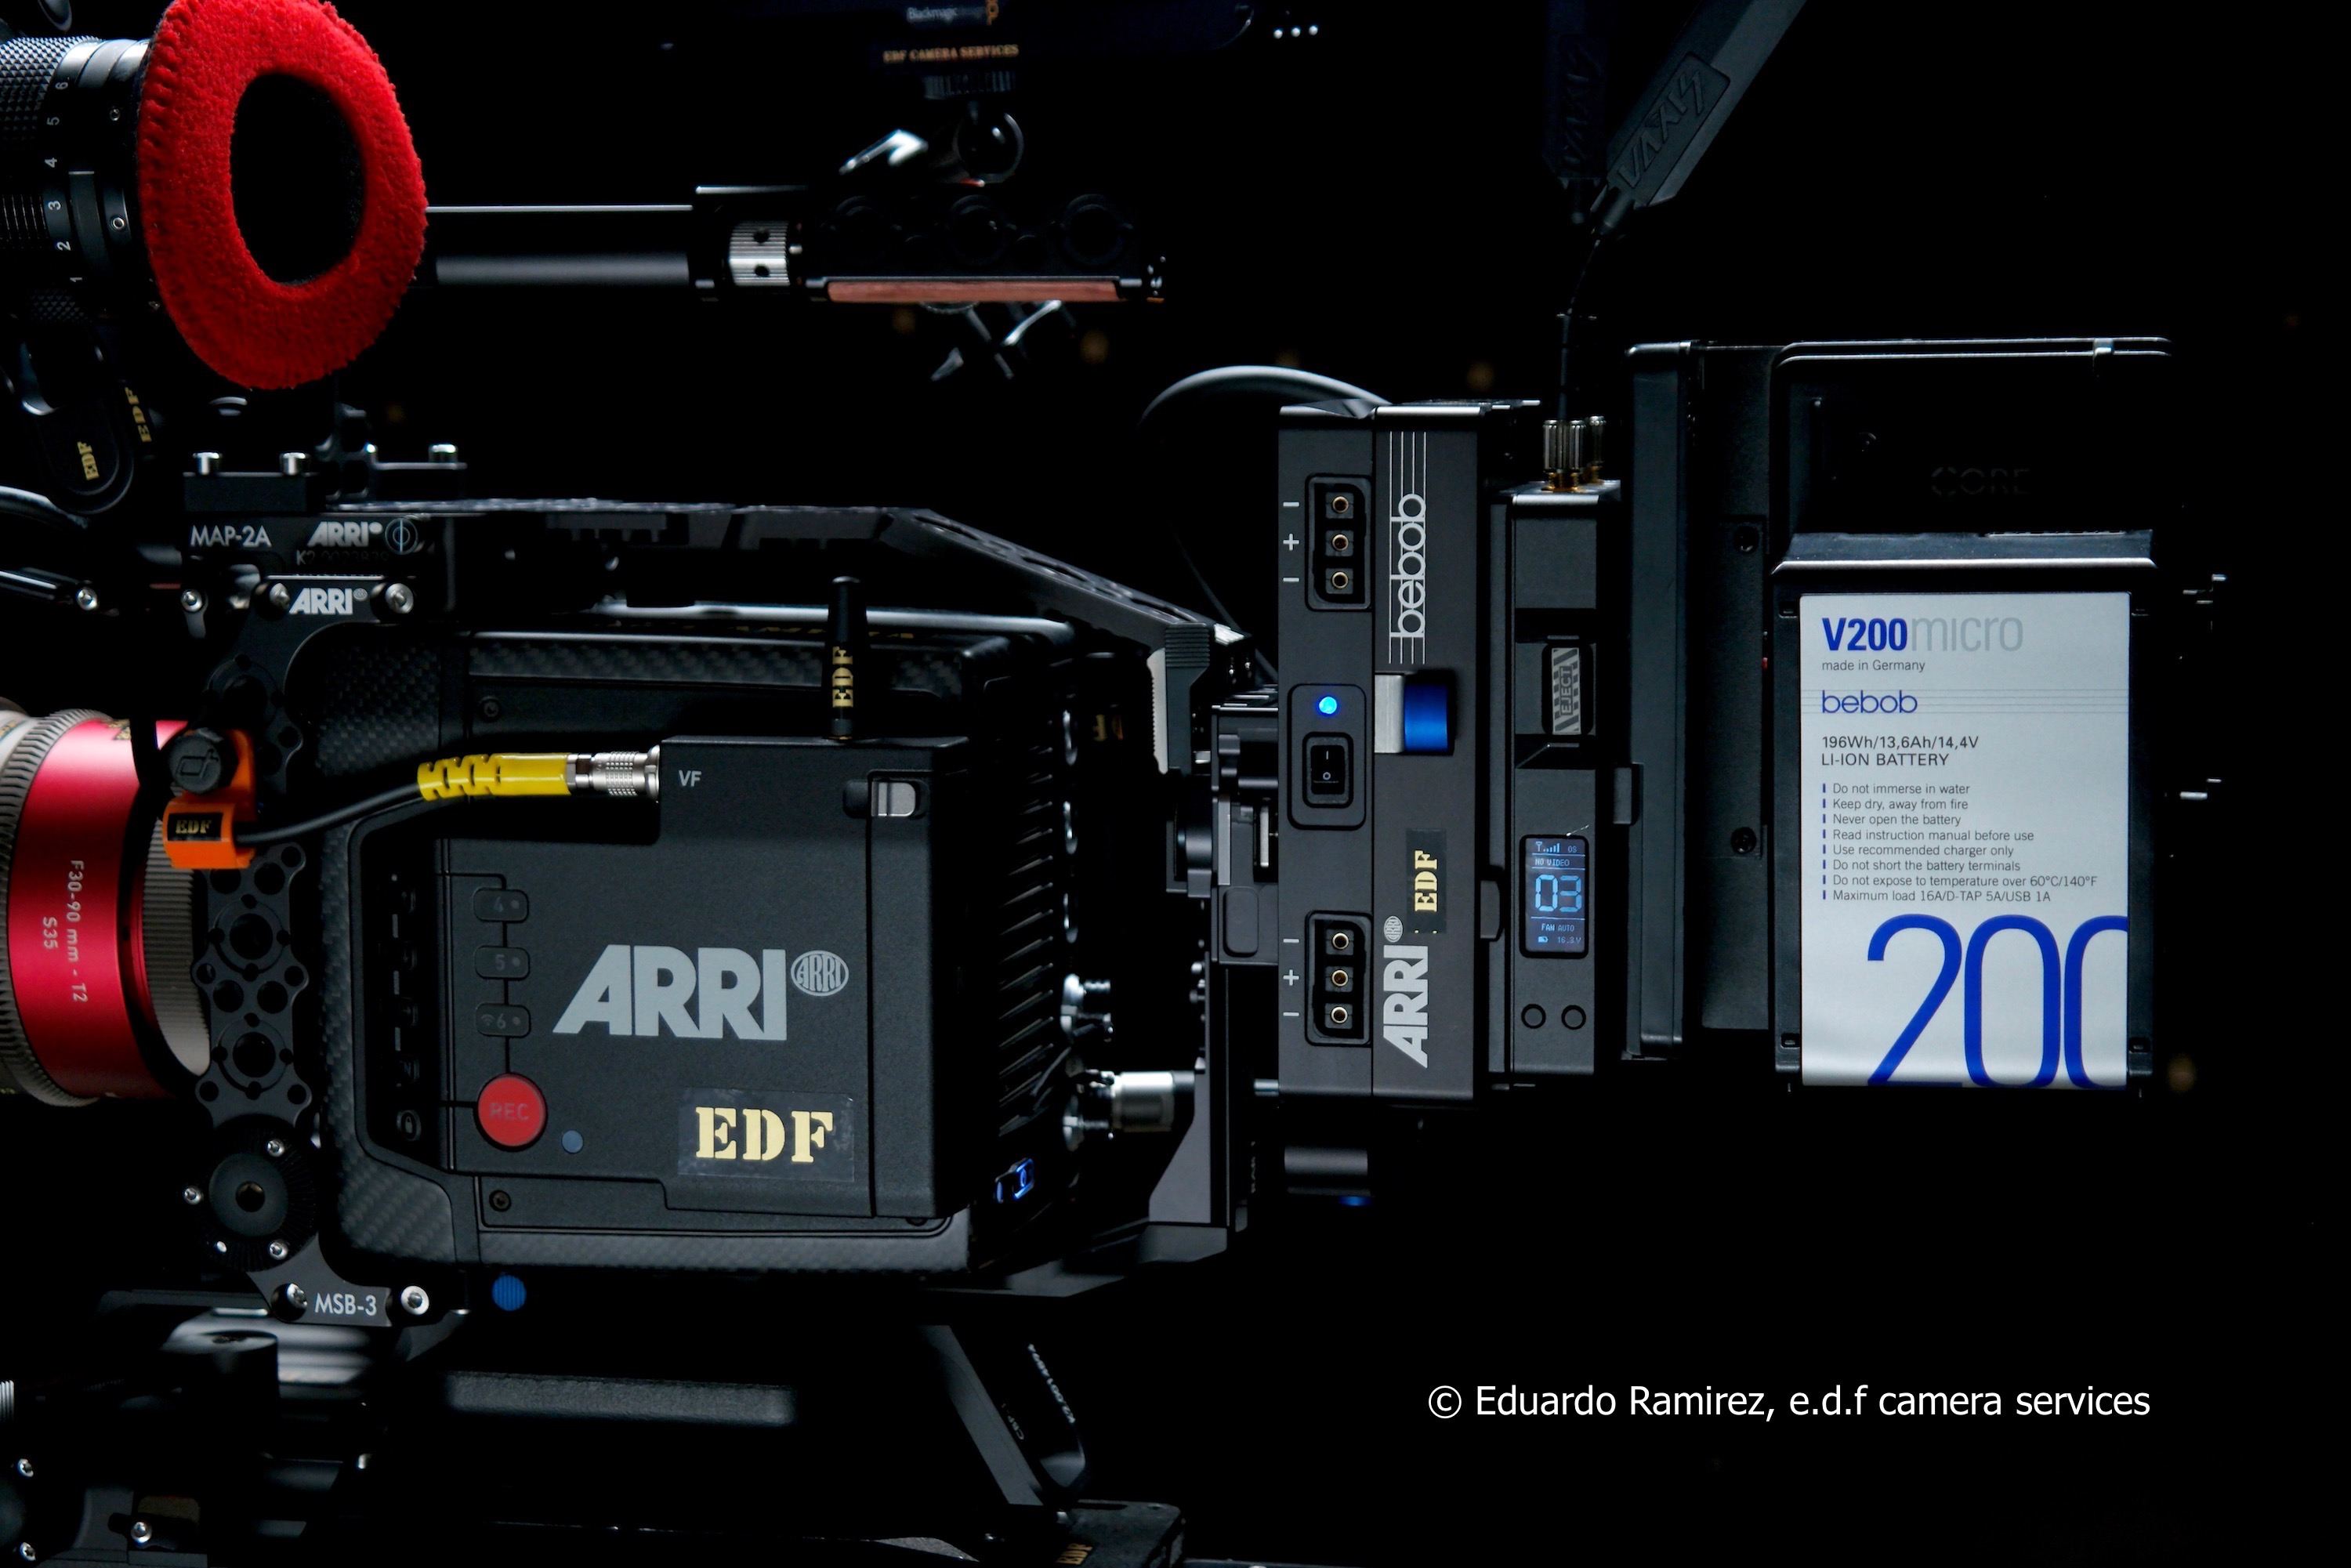 ARRI offers the full range of bebob products in Japan and Korea